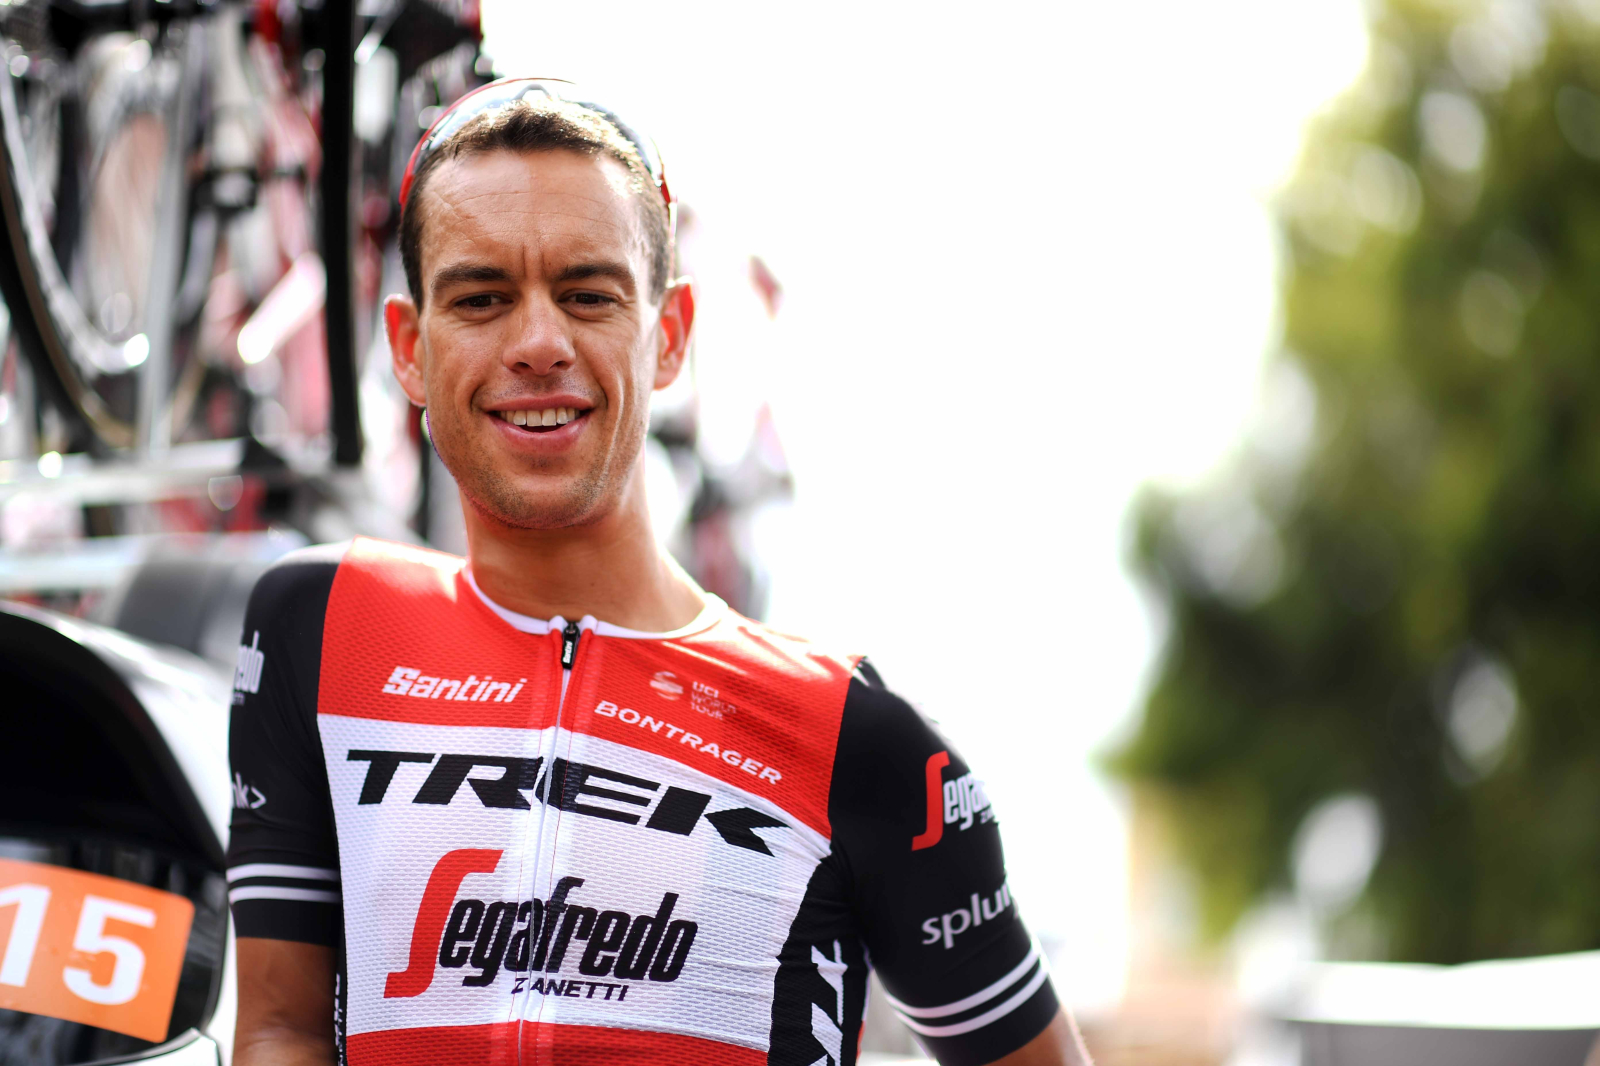 NORWOOD, AUSTRALIA - JANUARY 16:  Richie Porte of Australia and Team Trek-Segafredo looks on during stage two of the 2019 Tour Down Under on January 16, 2019 in Norwood, Australia.  (Photo by Daniel Kalisz/Getty Images)